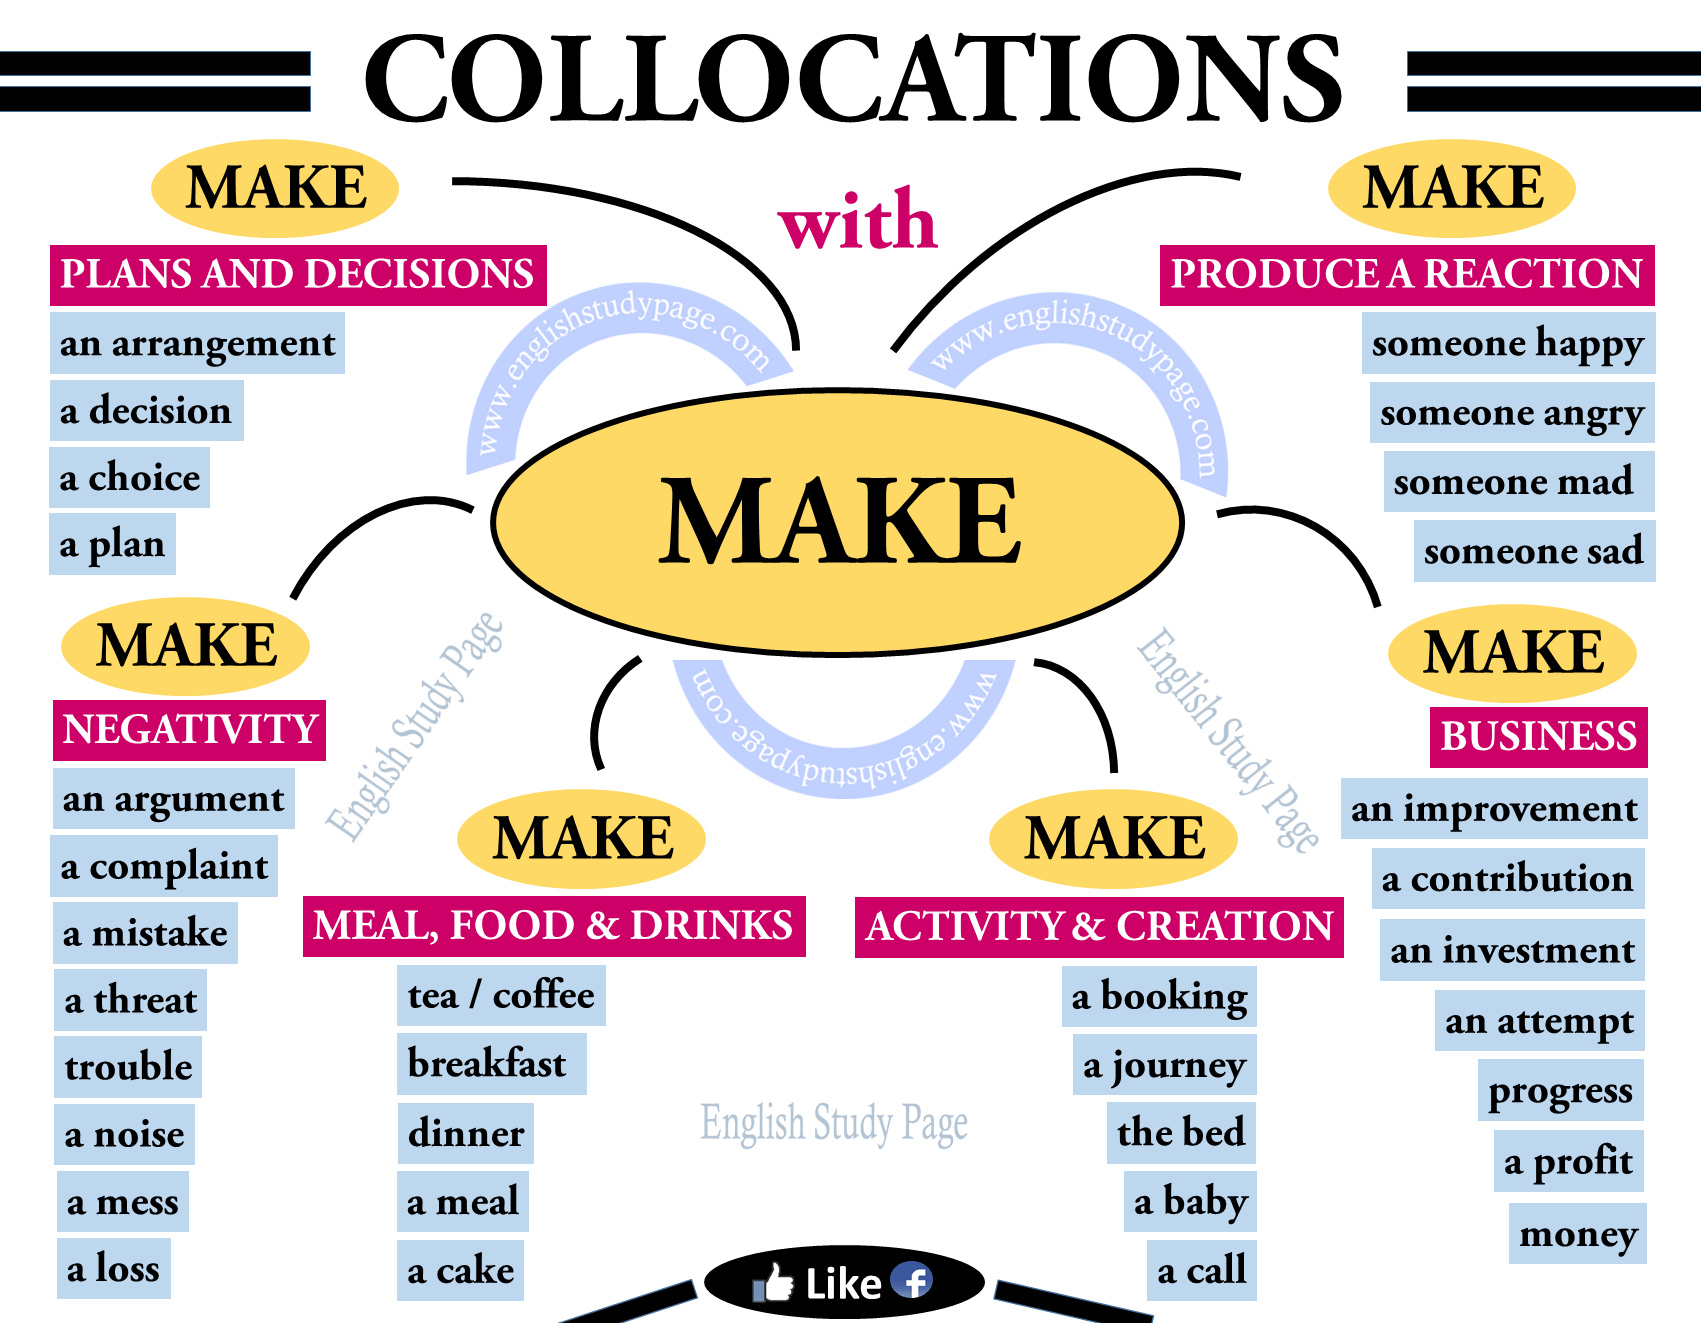 Collocations With Make In English English Study Page